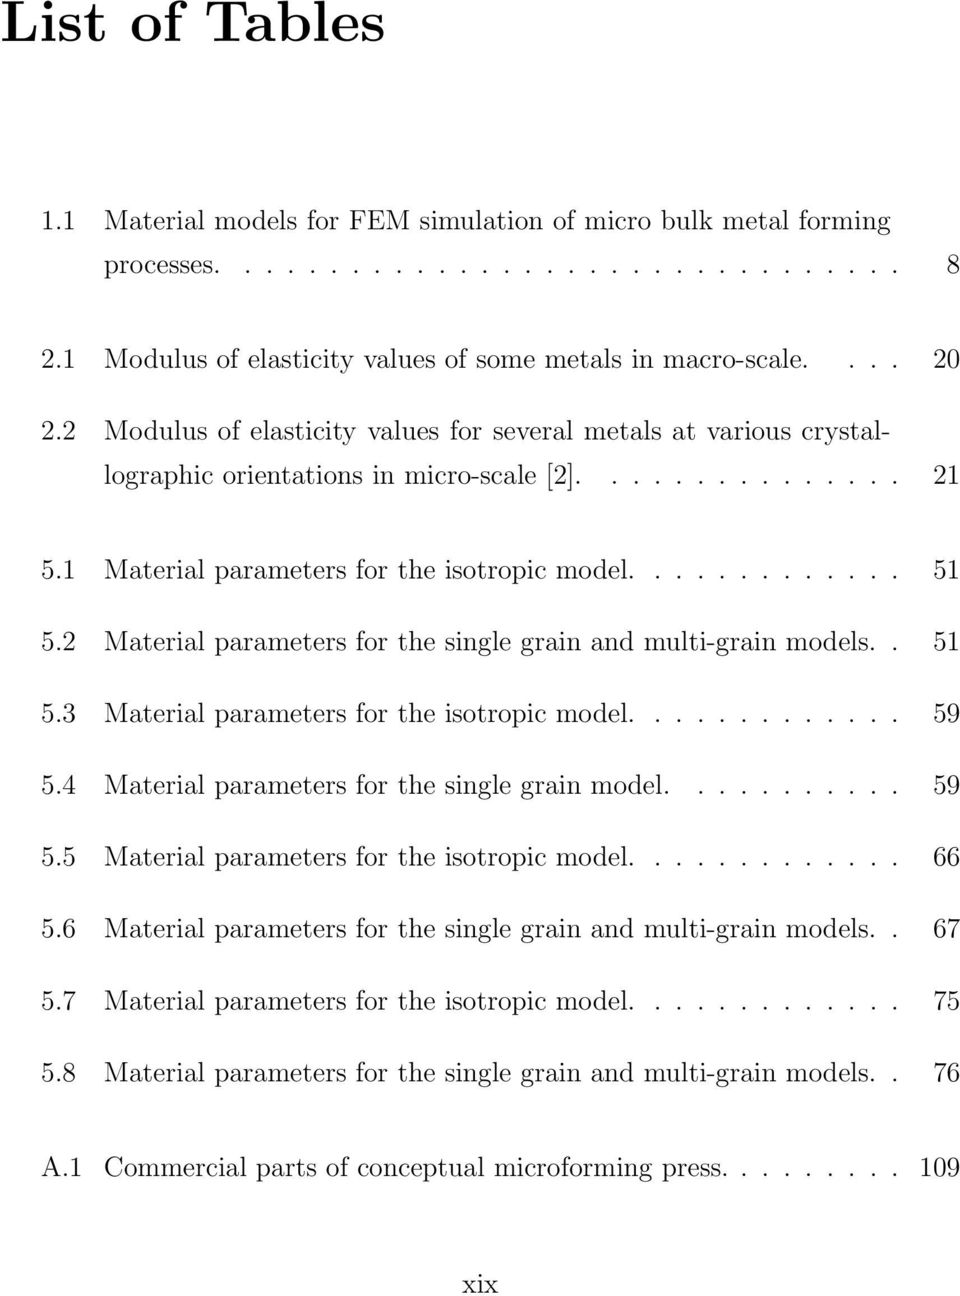 2 Material parameters for the single grain and multi-grain models.. 51 5.3 Material parameters for the isotropic model............. 59 5.4 Material parameters for the single grain model........... 59 5.5 Material parameters for the isotropic model.